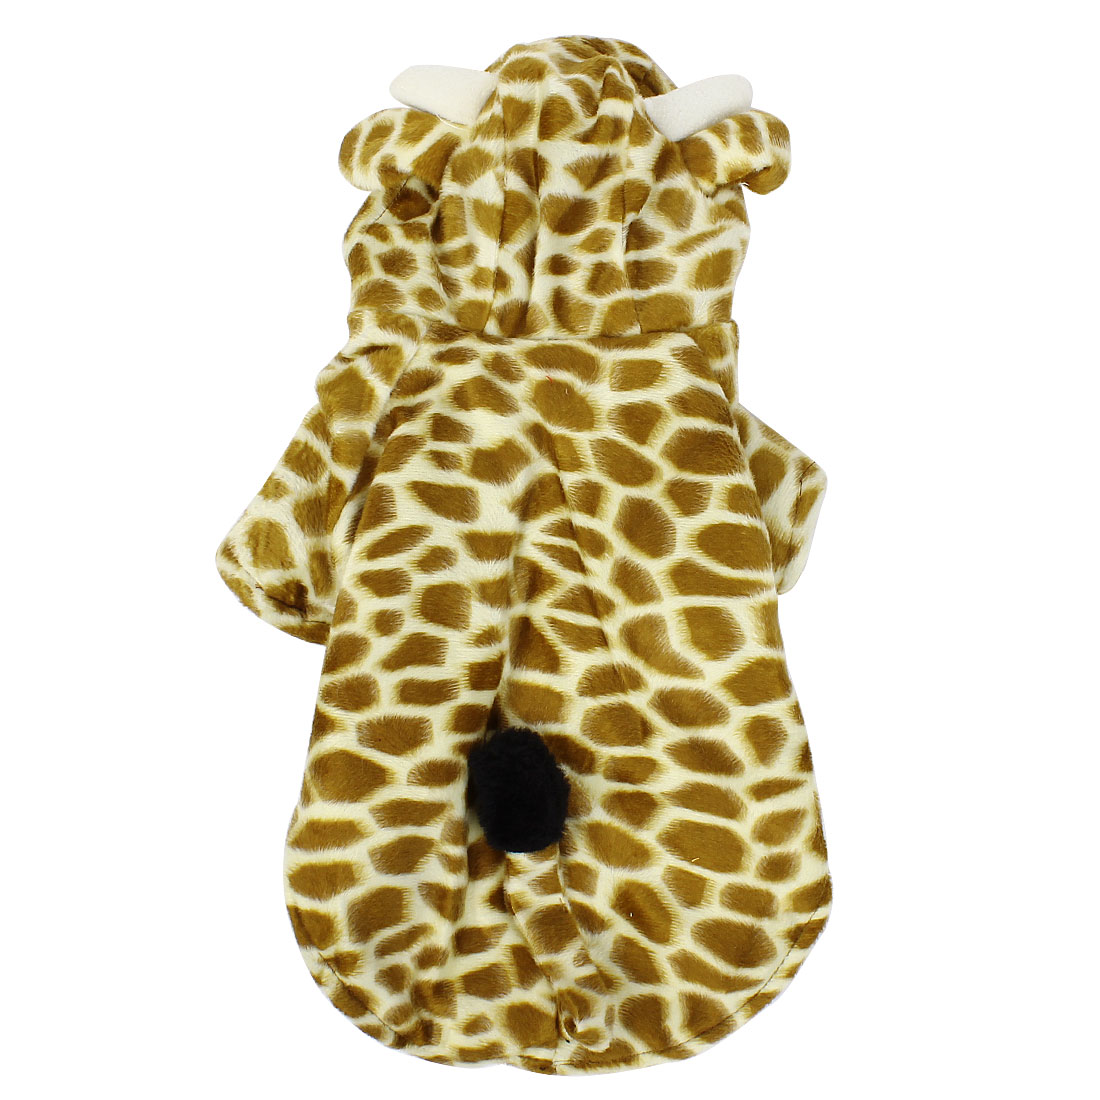 Winter Warm Giraffe Shape Hoodie Single Breasted Sleeved Pet Dog Doggy Apparel Coat Clothes Coffee Color Beige XS